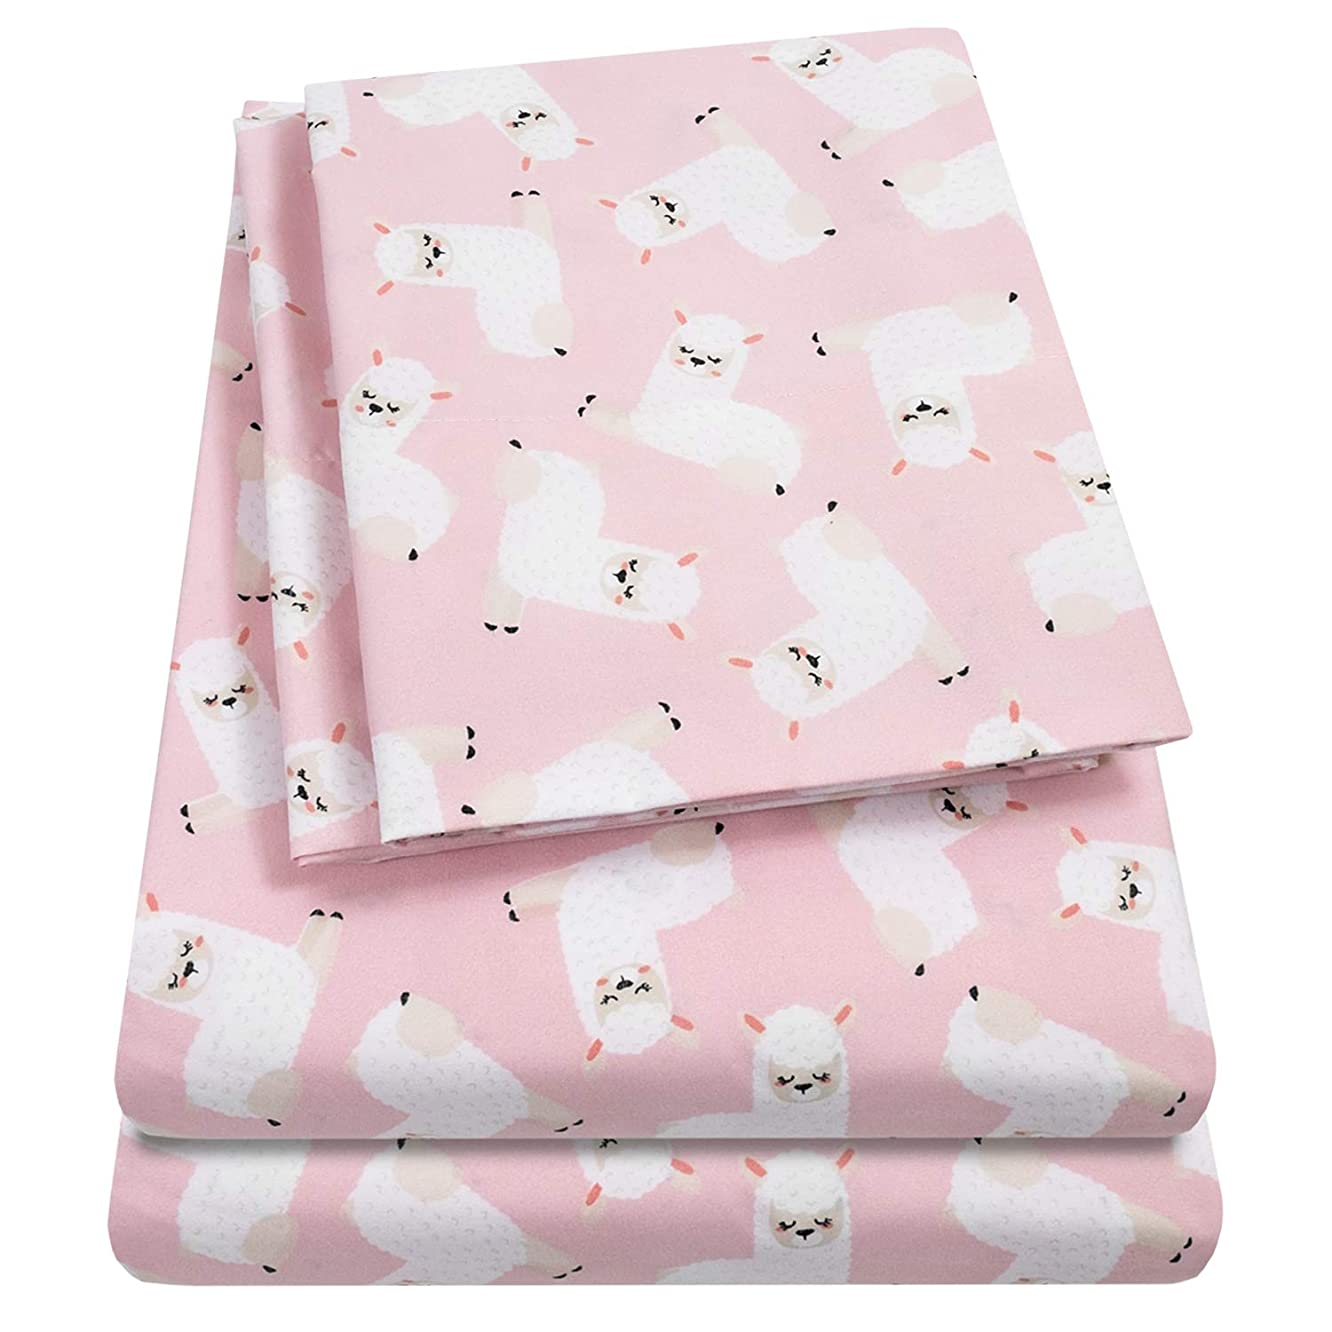 1500 Supreme Kids Bed Sheet Collection - Fun Colorful and Comfortable Boys and Girls Toddler Sheet Sets - Deep Pocket Wrinkle Free Hypoallergenic Soft and Cozy Bedding - Twin XL, Llamas